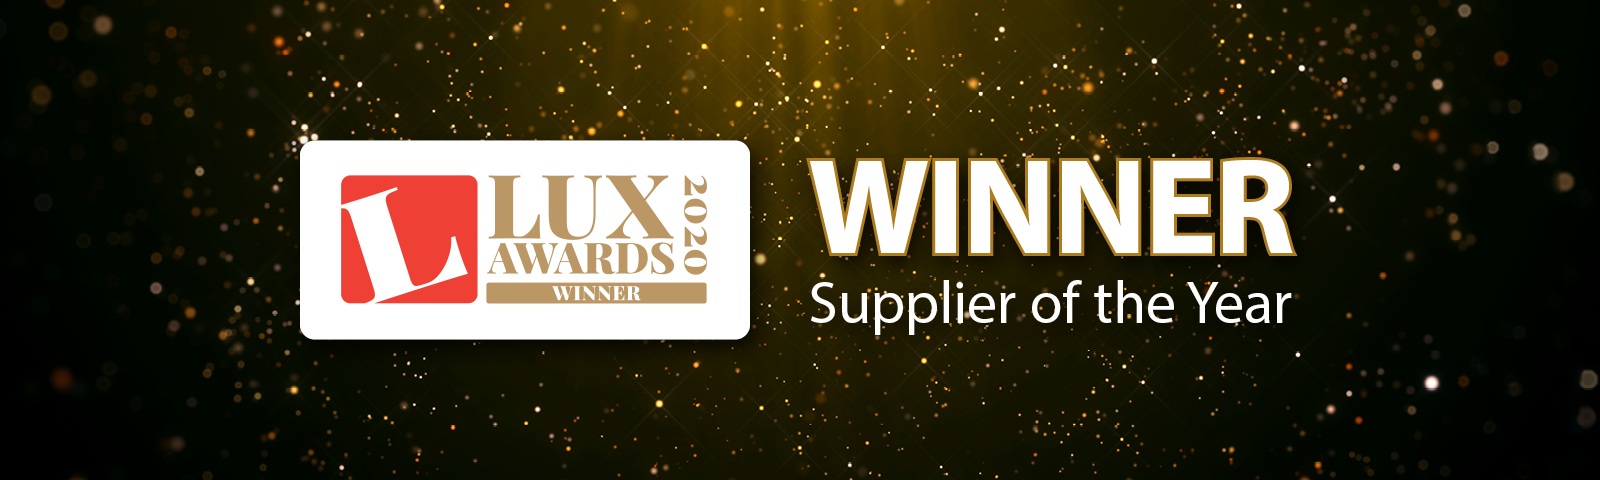 Thorlux celebrates winning Supplier of the Year at the Lux Awards 2020